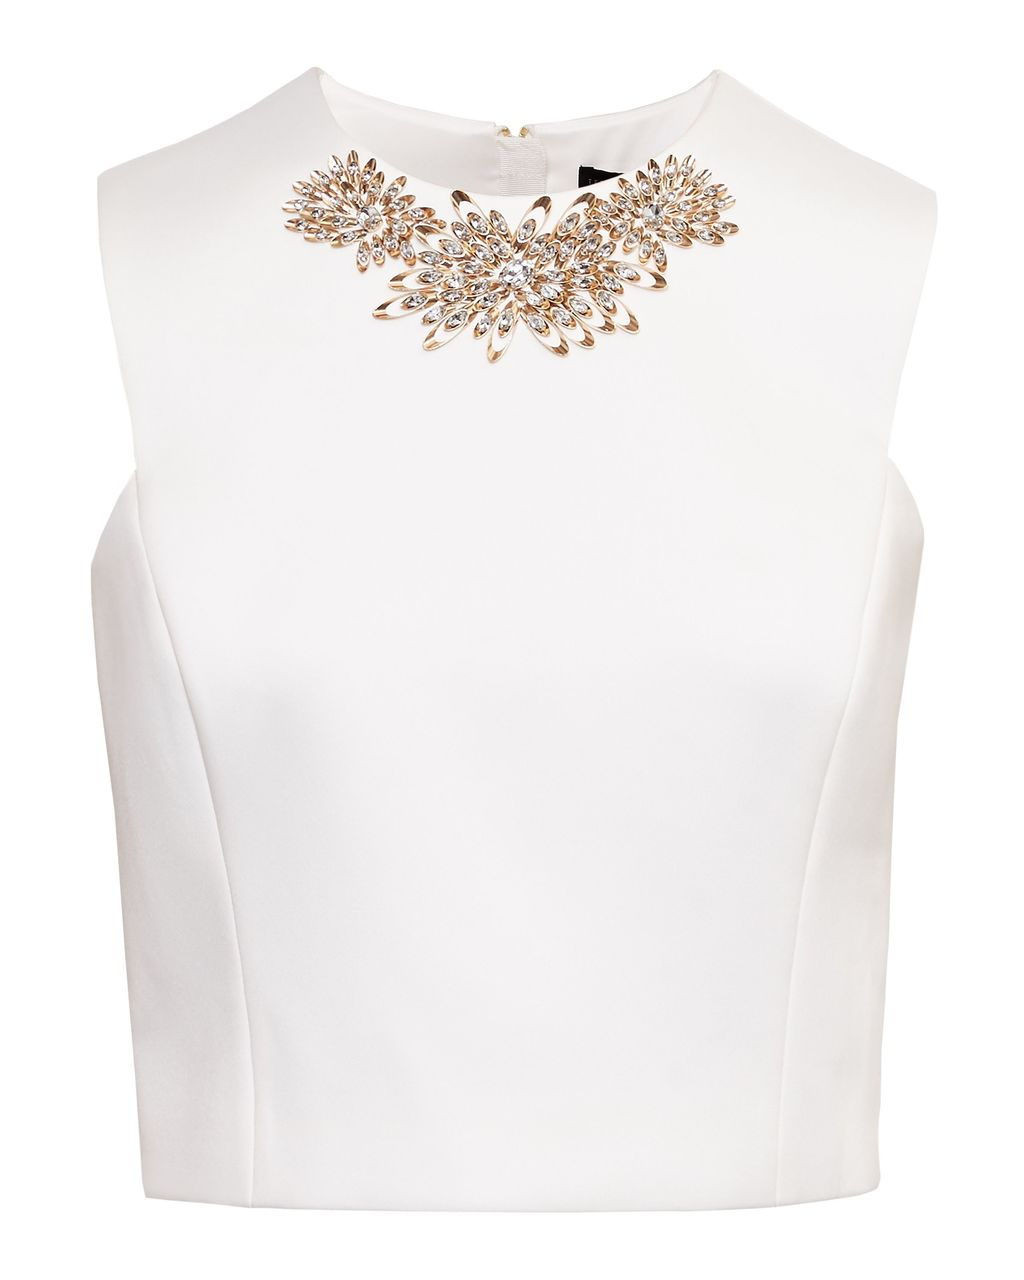 Jaby Embellished Cropped Top, White - pattern: plain; sleeve style: sleeveless; bust detail: added detail/embellishment at bust; length: cropped; predominant colour: white; occasions: evening; style: top; fibres: polyester/polyamide - 100%; fit: body skimming; neckline: crew; sleeve length: sleeveless; texture group: ornate wovens; pattern type: fabric; embellishment: jewels/stone; season: s/s 2016